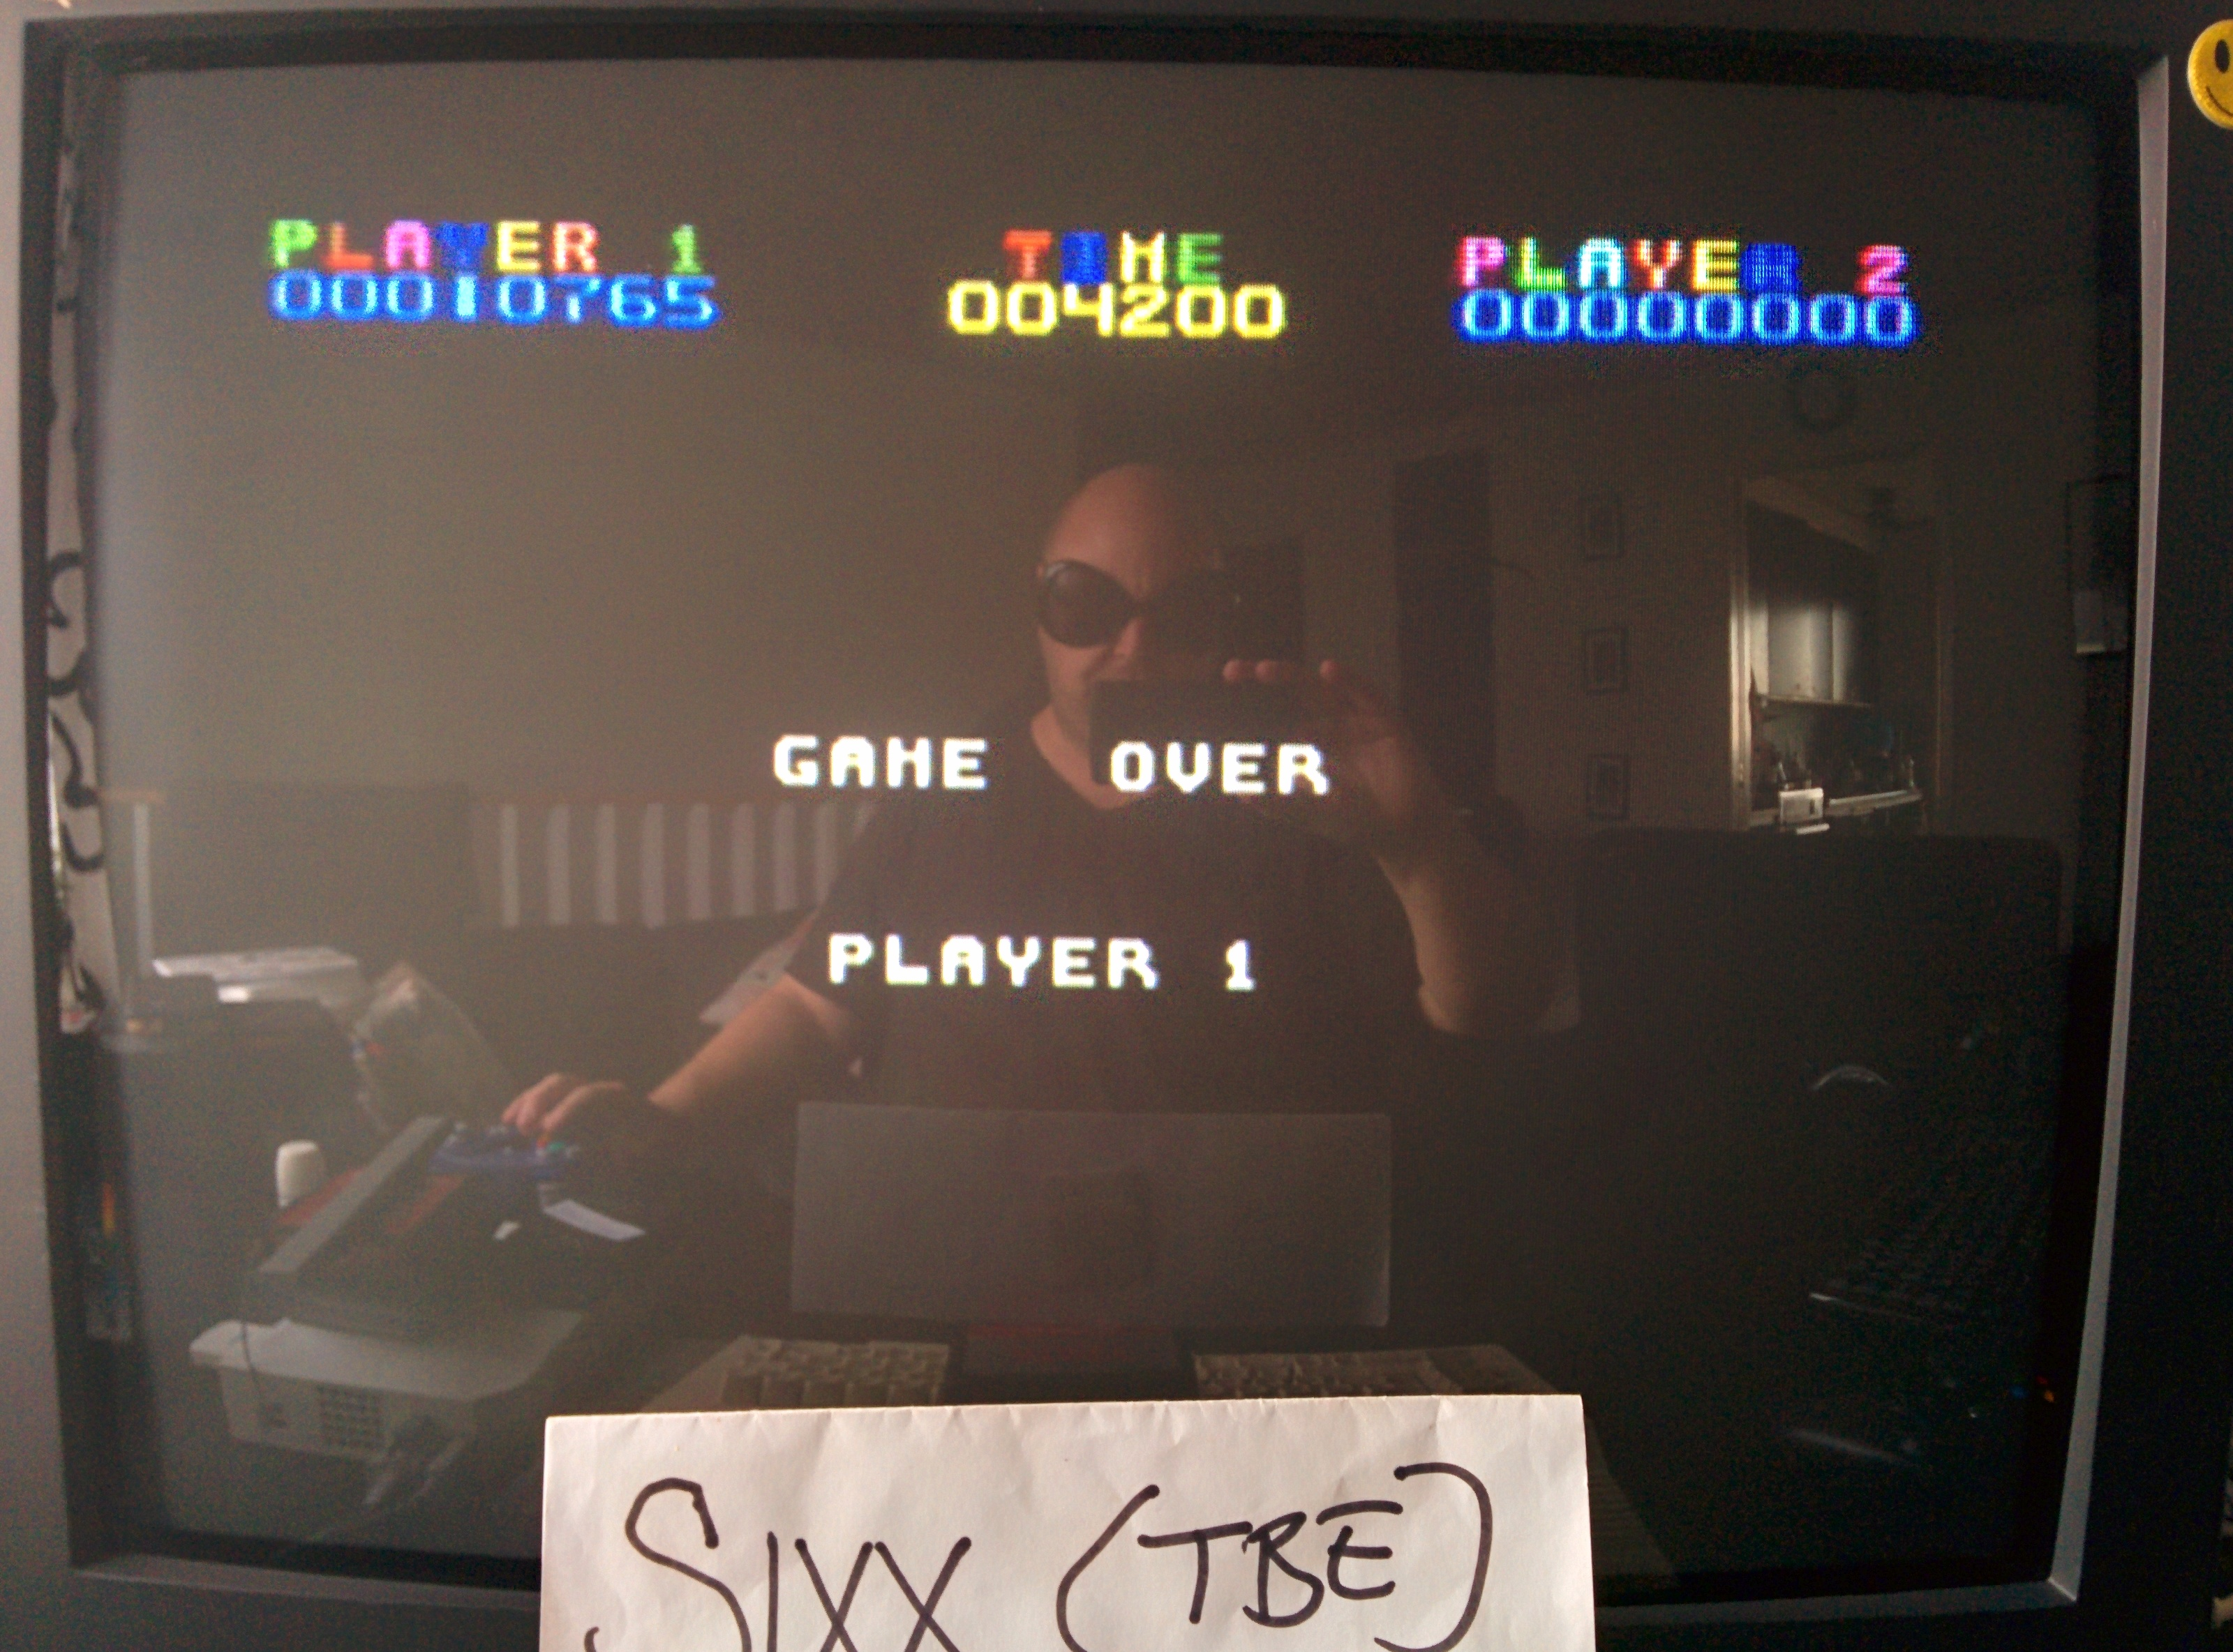 Sixx: Miner 2049er (Colecovision Emulated) 10,765 points on 2014-07-14 13:10:49